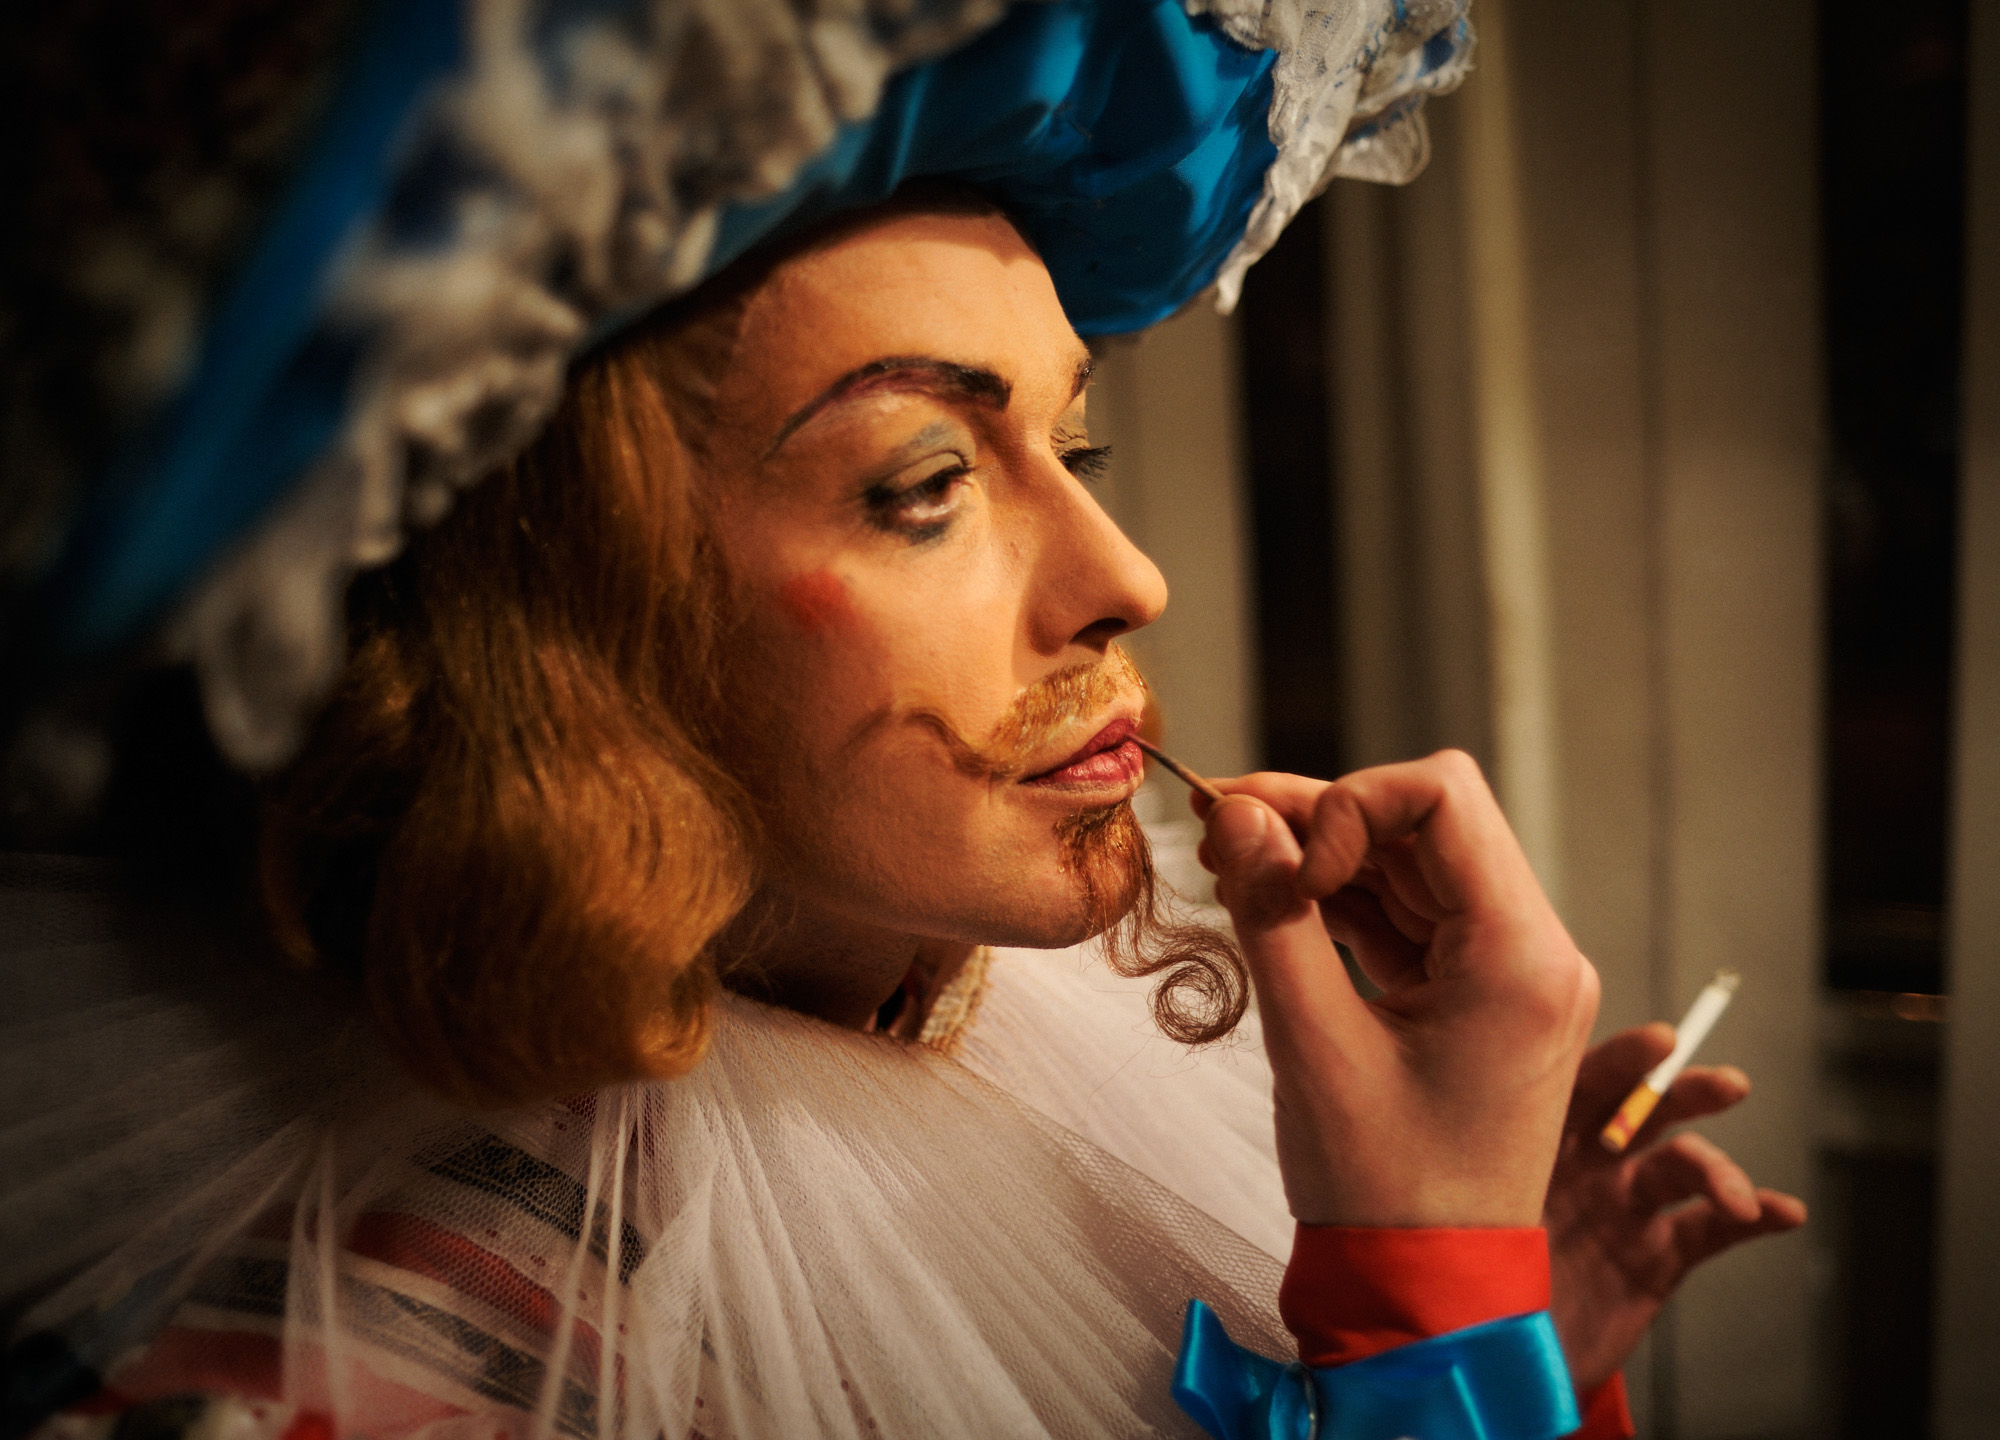 Serguei Najenko as Don Quixote is deft at applying his own makeup. Smoking is a popular vice among the dancers